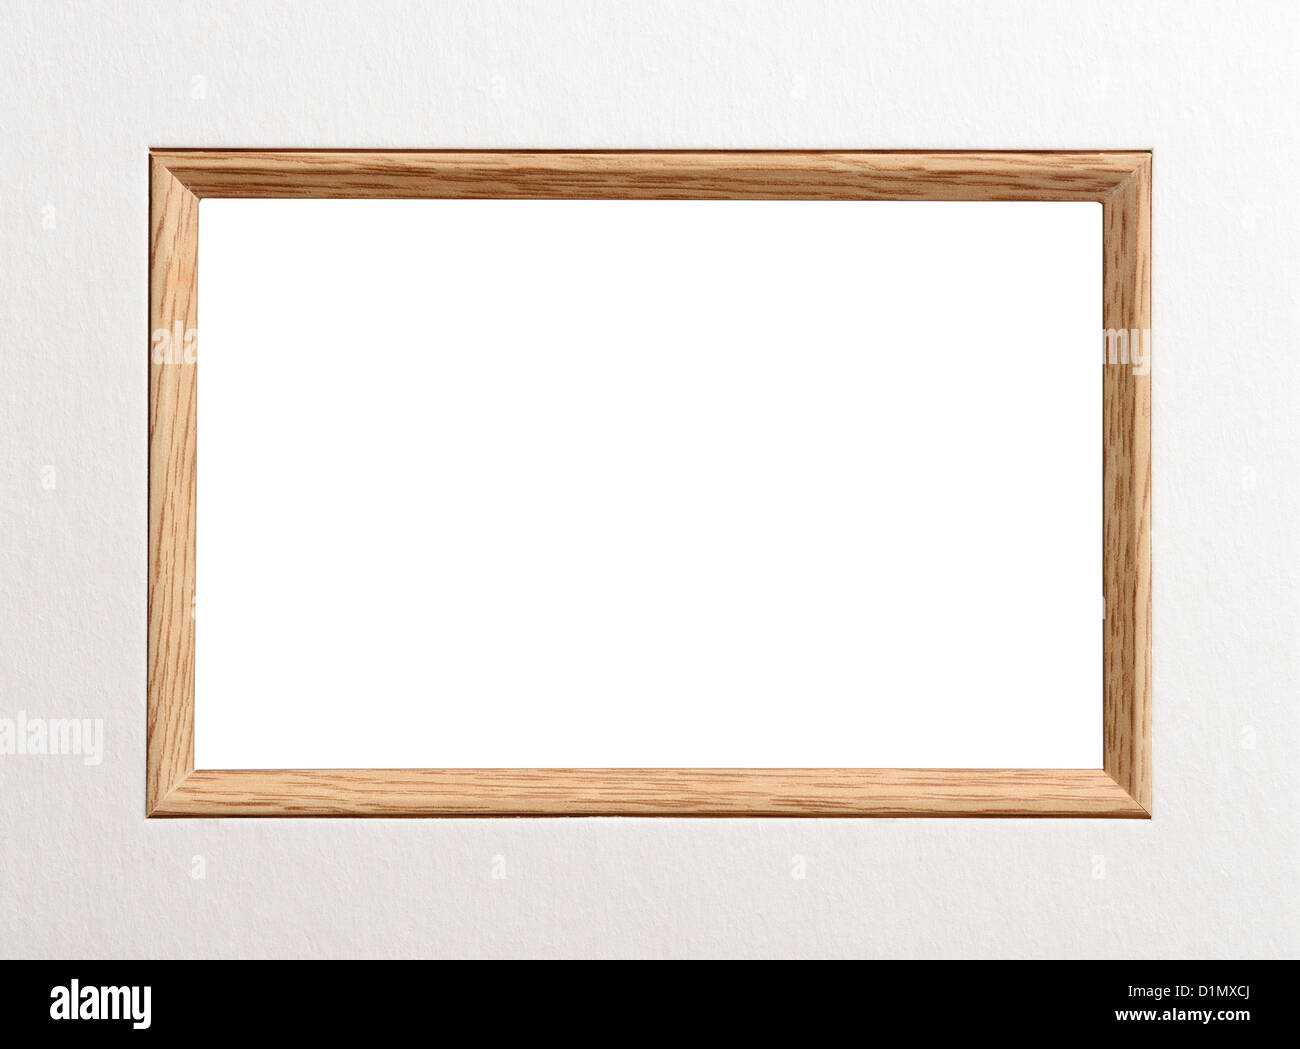 Wooden picture frame window - Stock Image